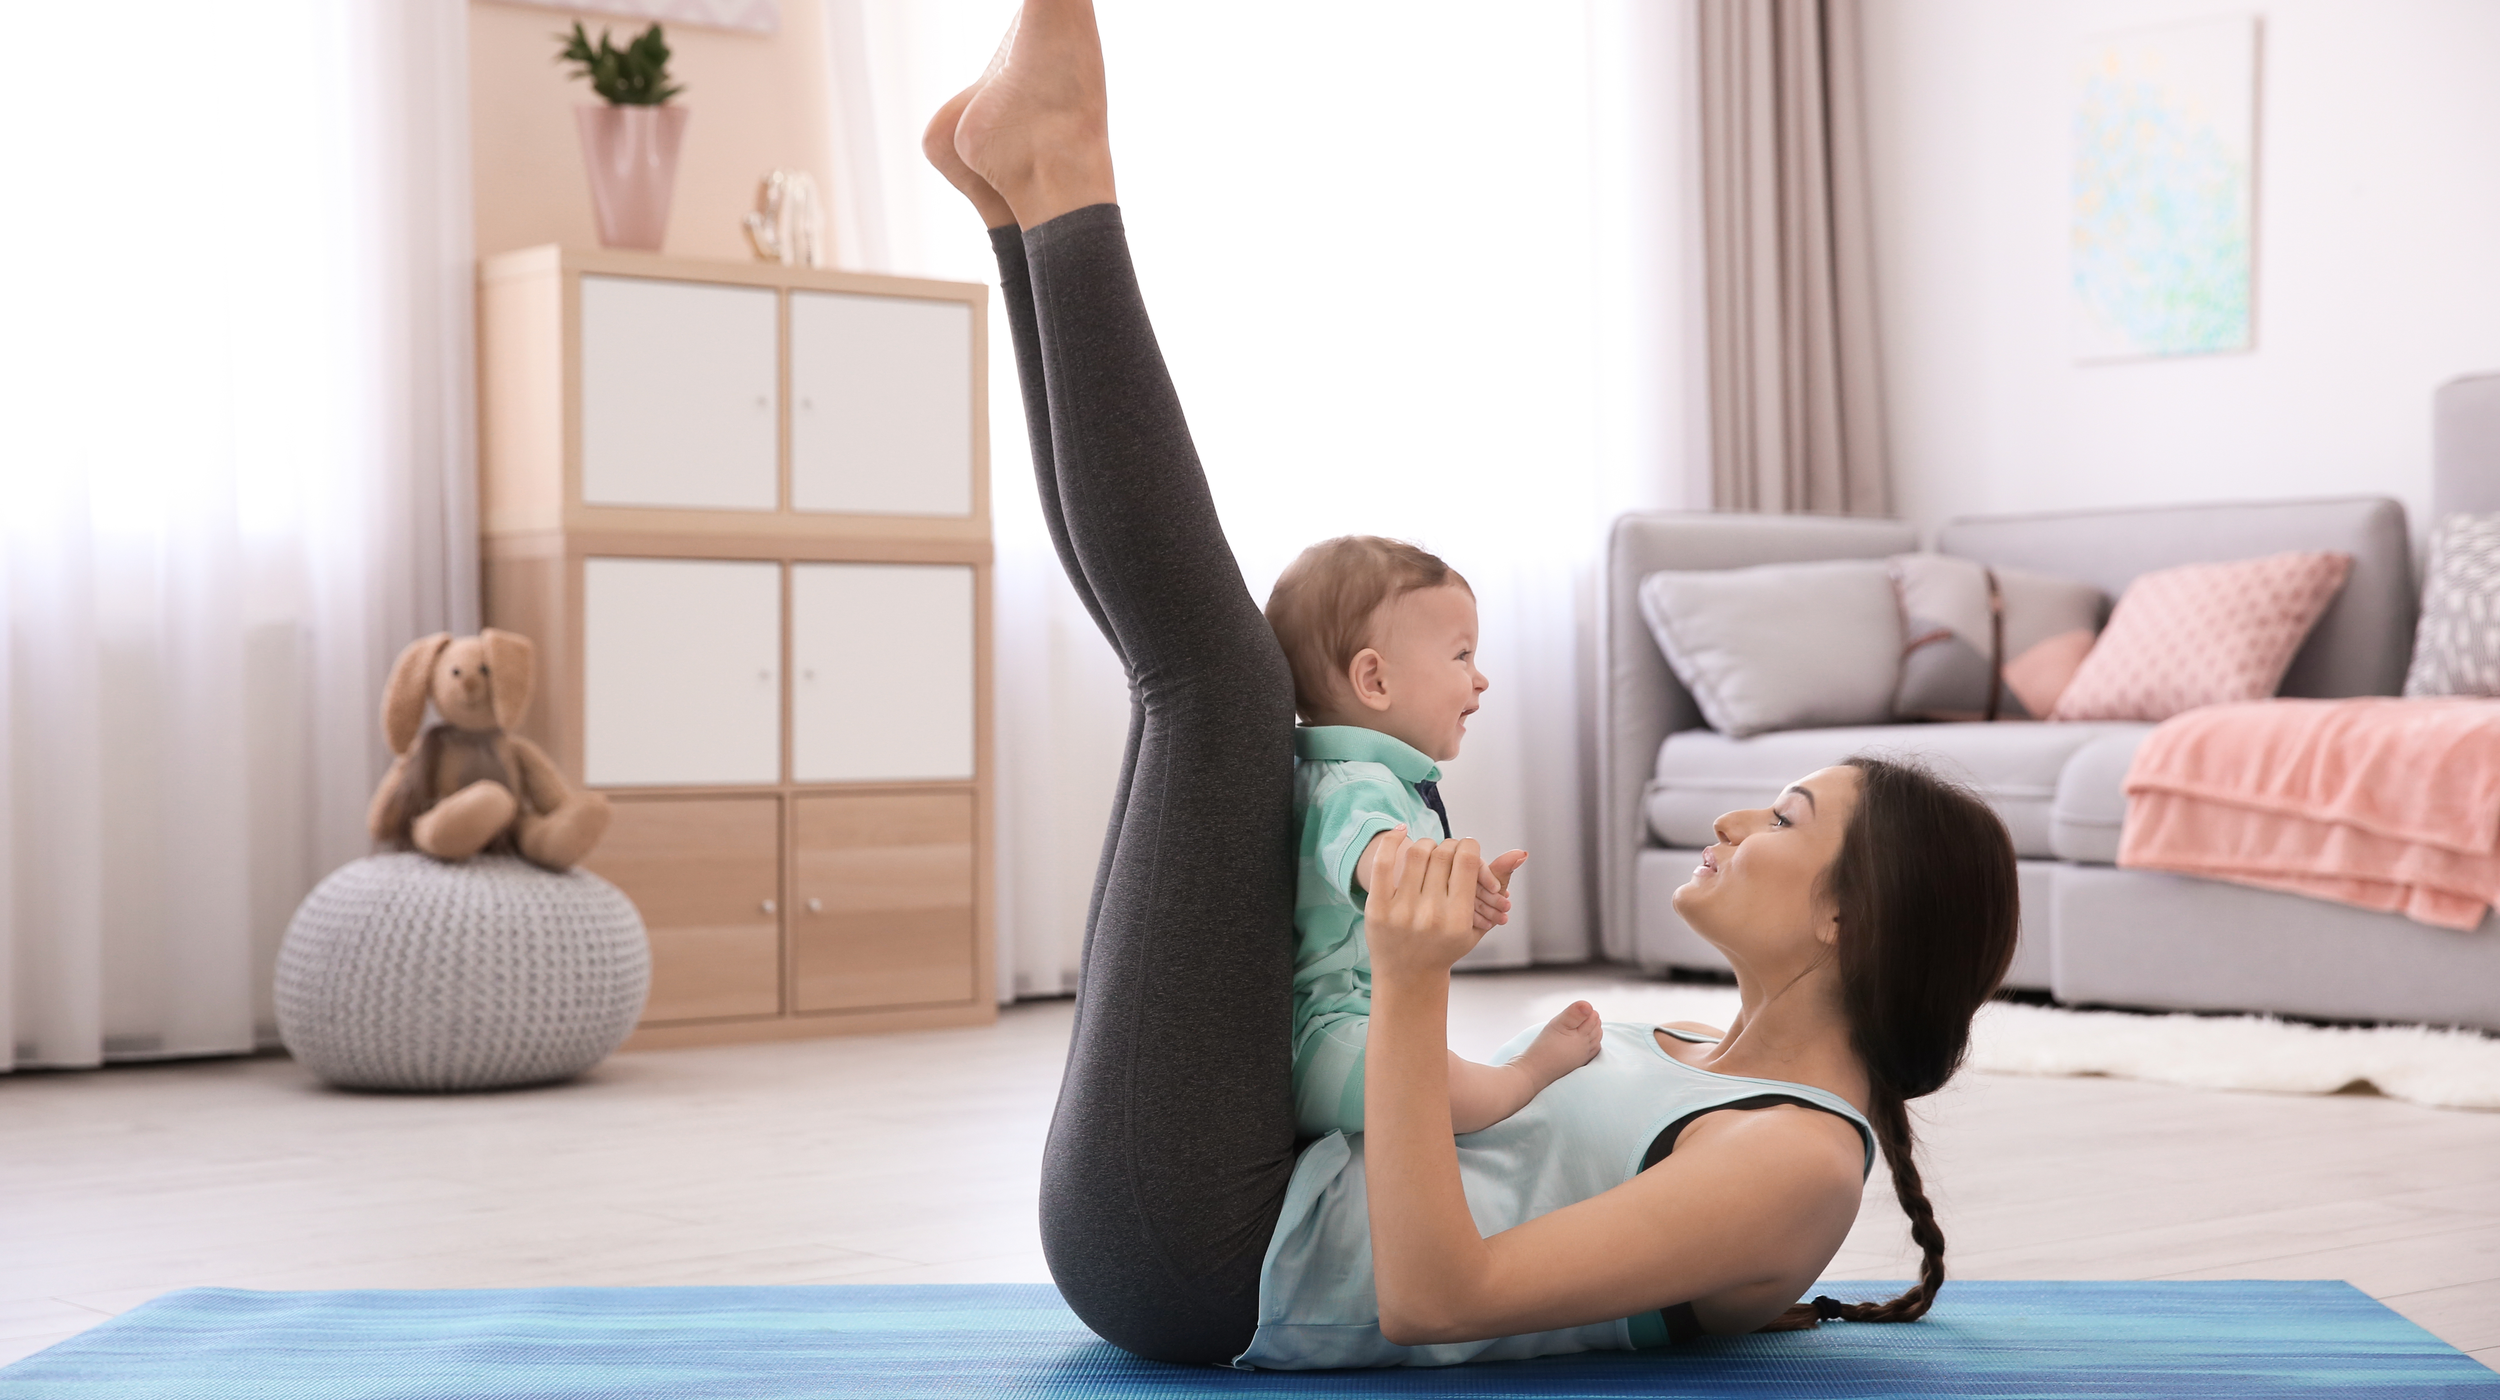 Working Out at Home with Your Newborn